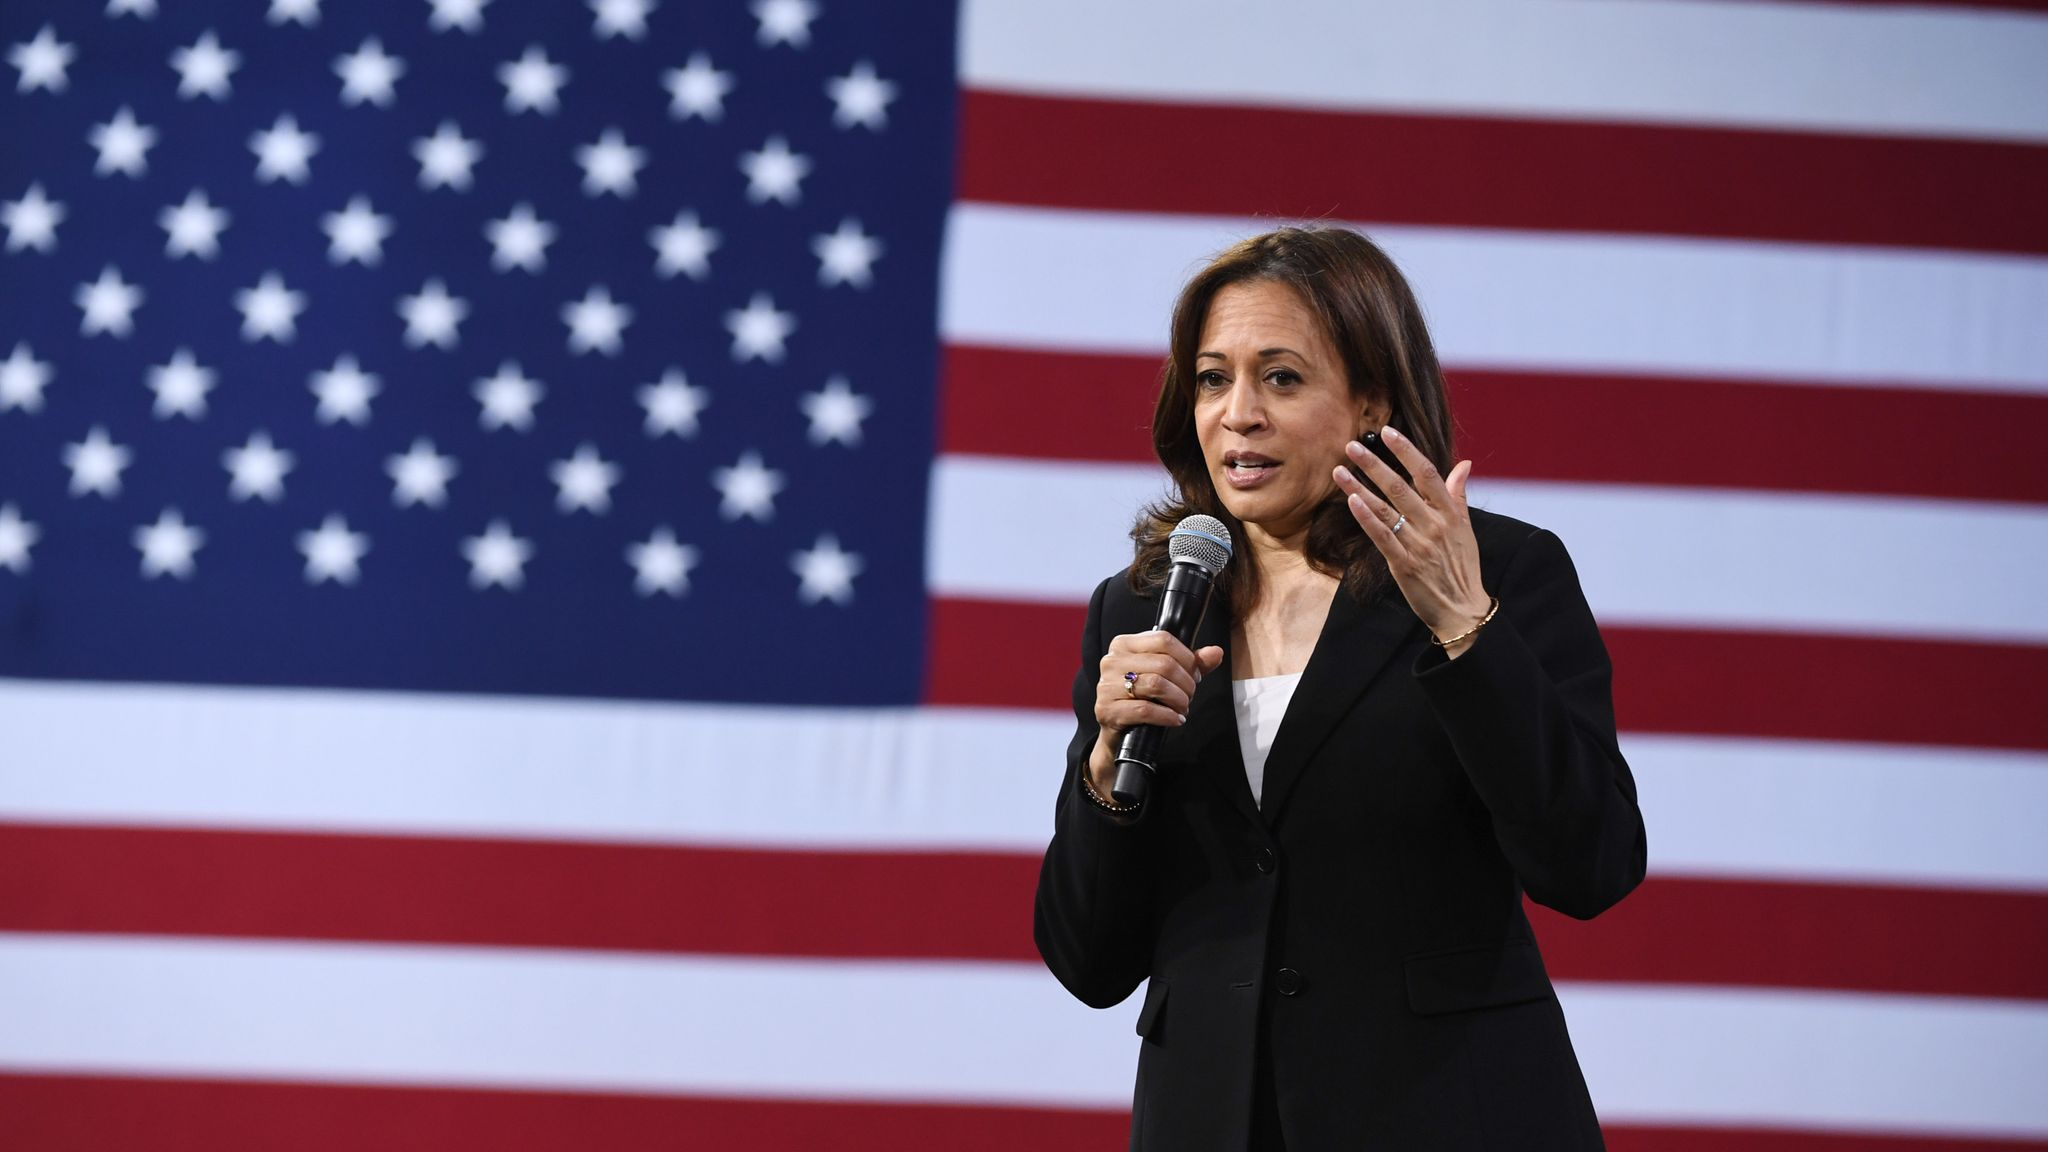 Kamala Harris Is Joe Biden S Vp Pick But Could She Soon Be In The Top Job Us News Sky News